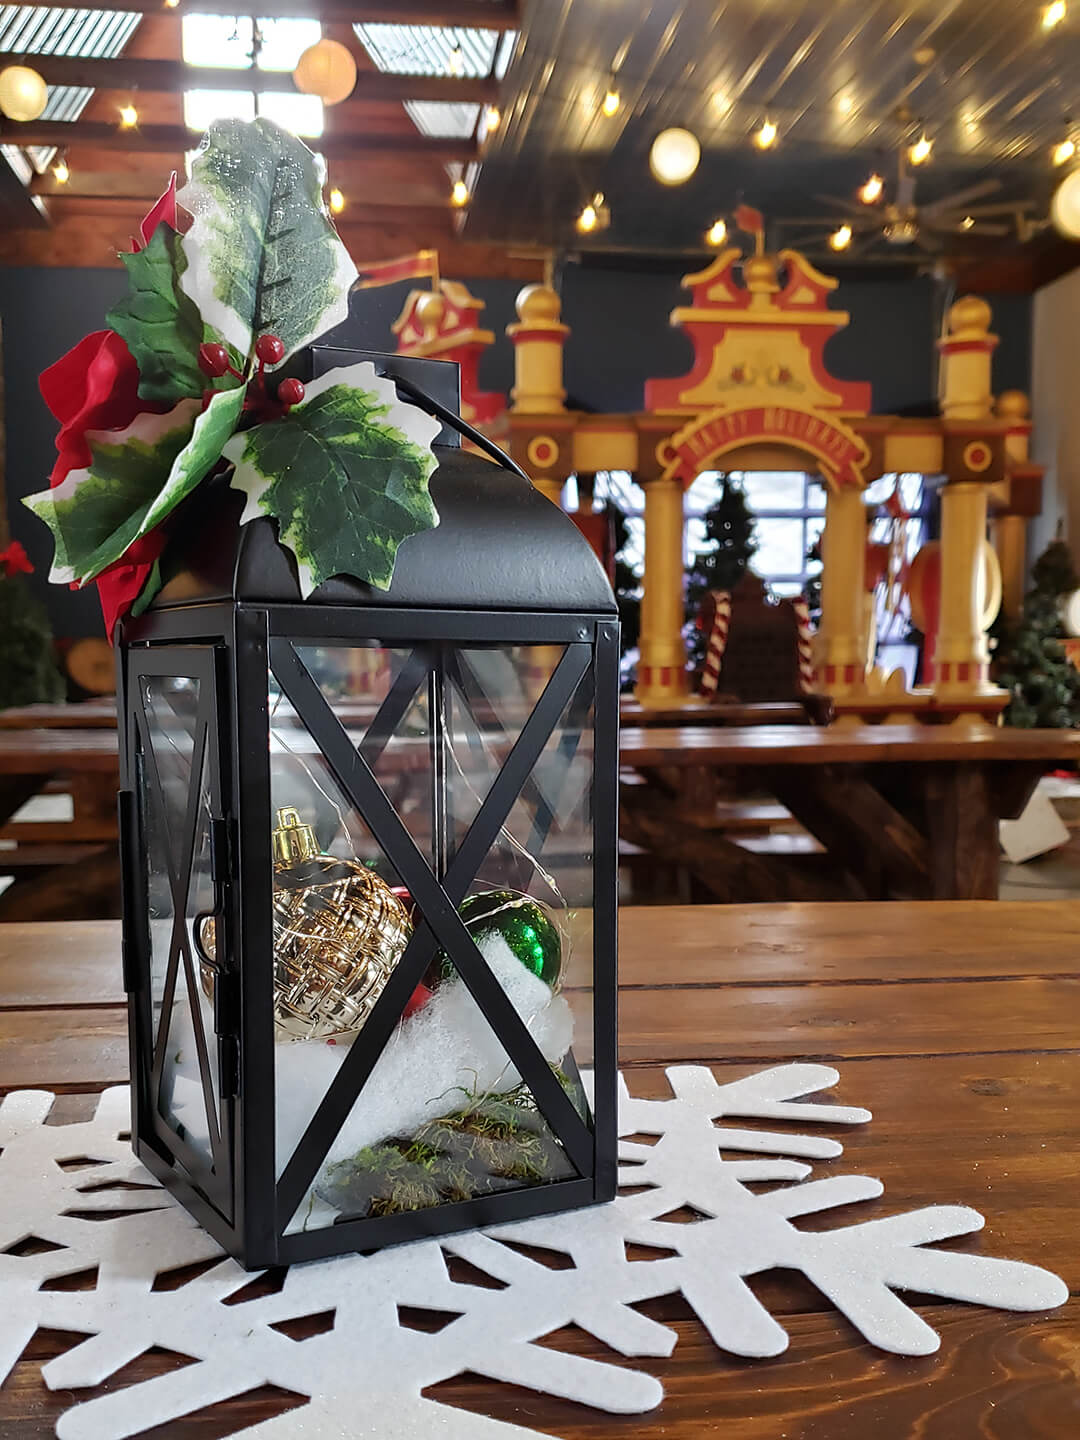 A table centerpiece featuring a lantern, holly, and ornaments, with Christmas decorations in the background